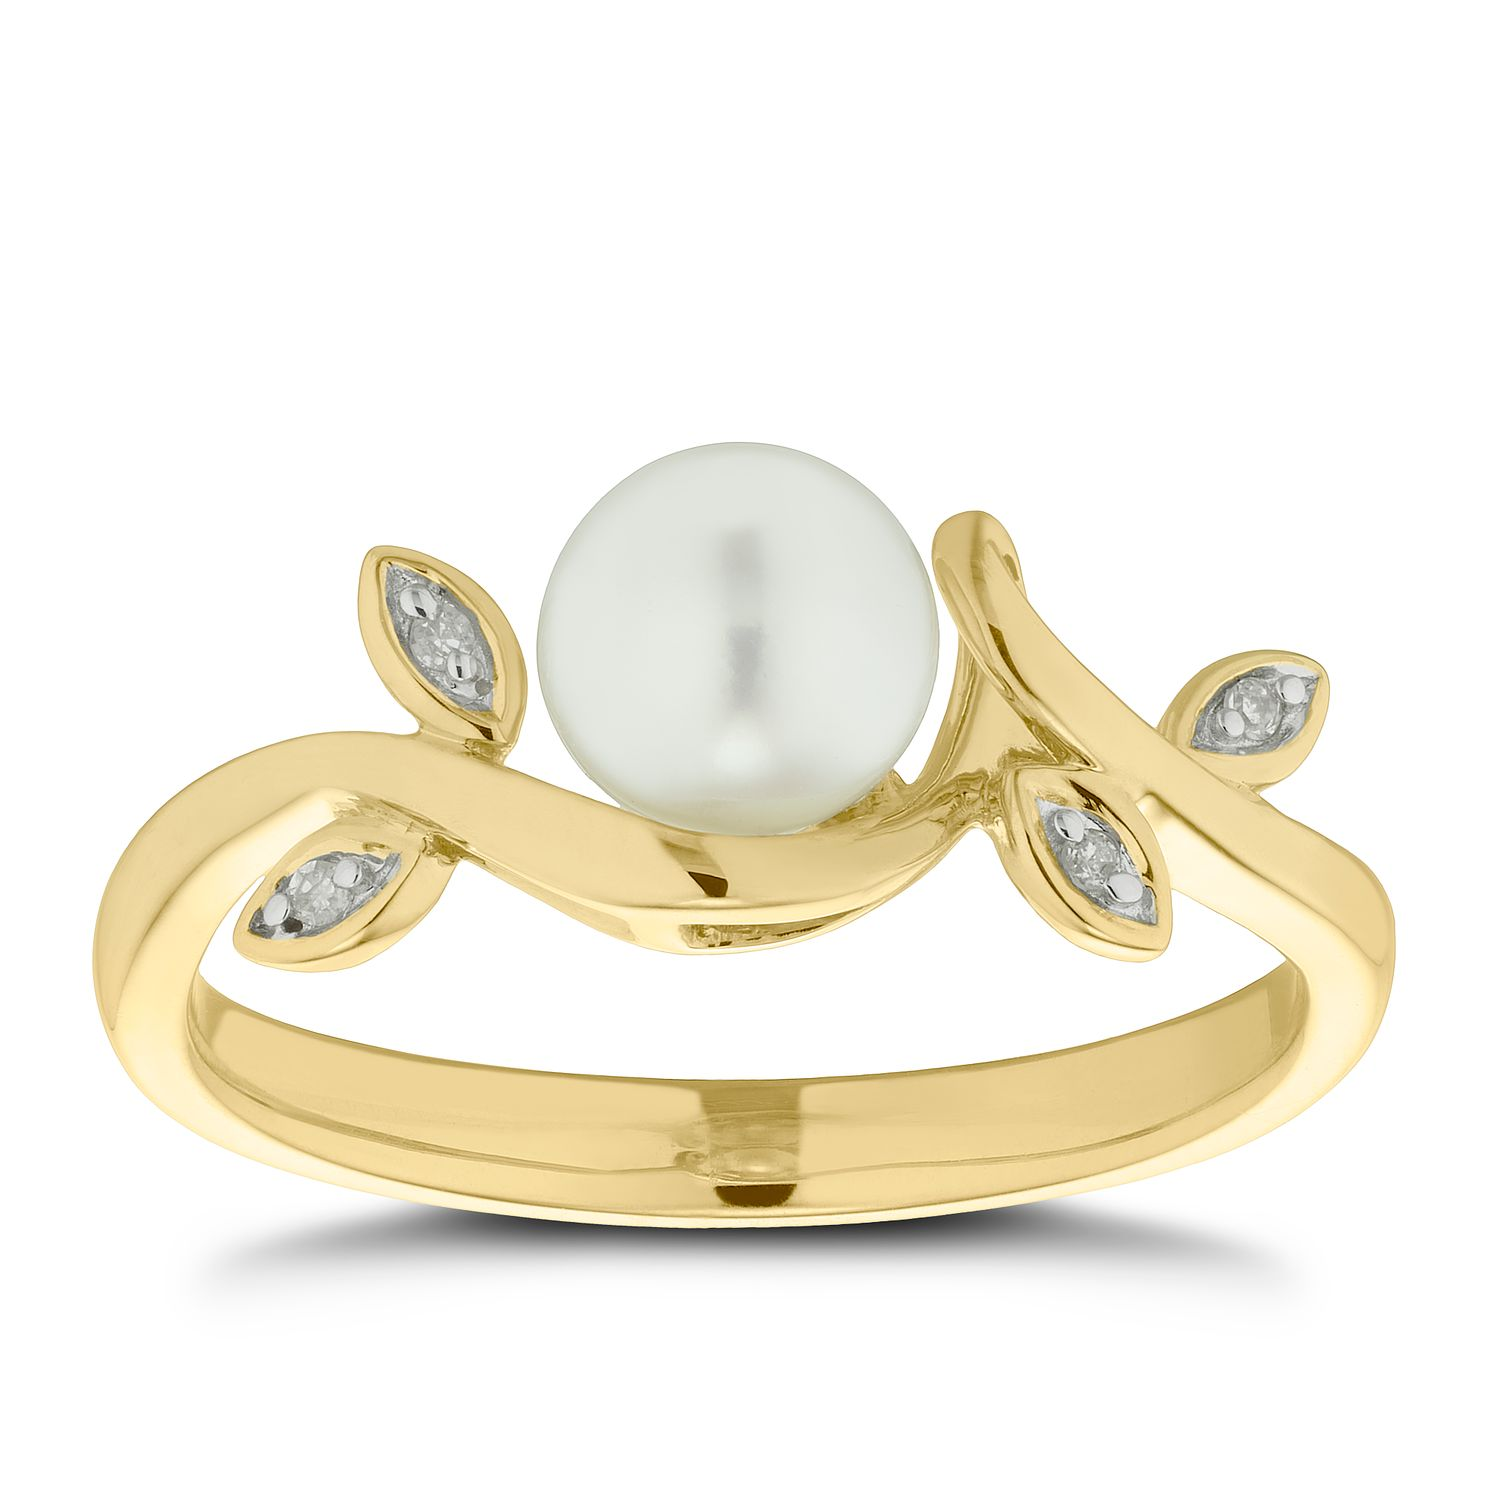 9ct Yellow Gold Cultured Freshwater Pearl & Diamond Ring - Product number 4673840